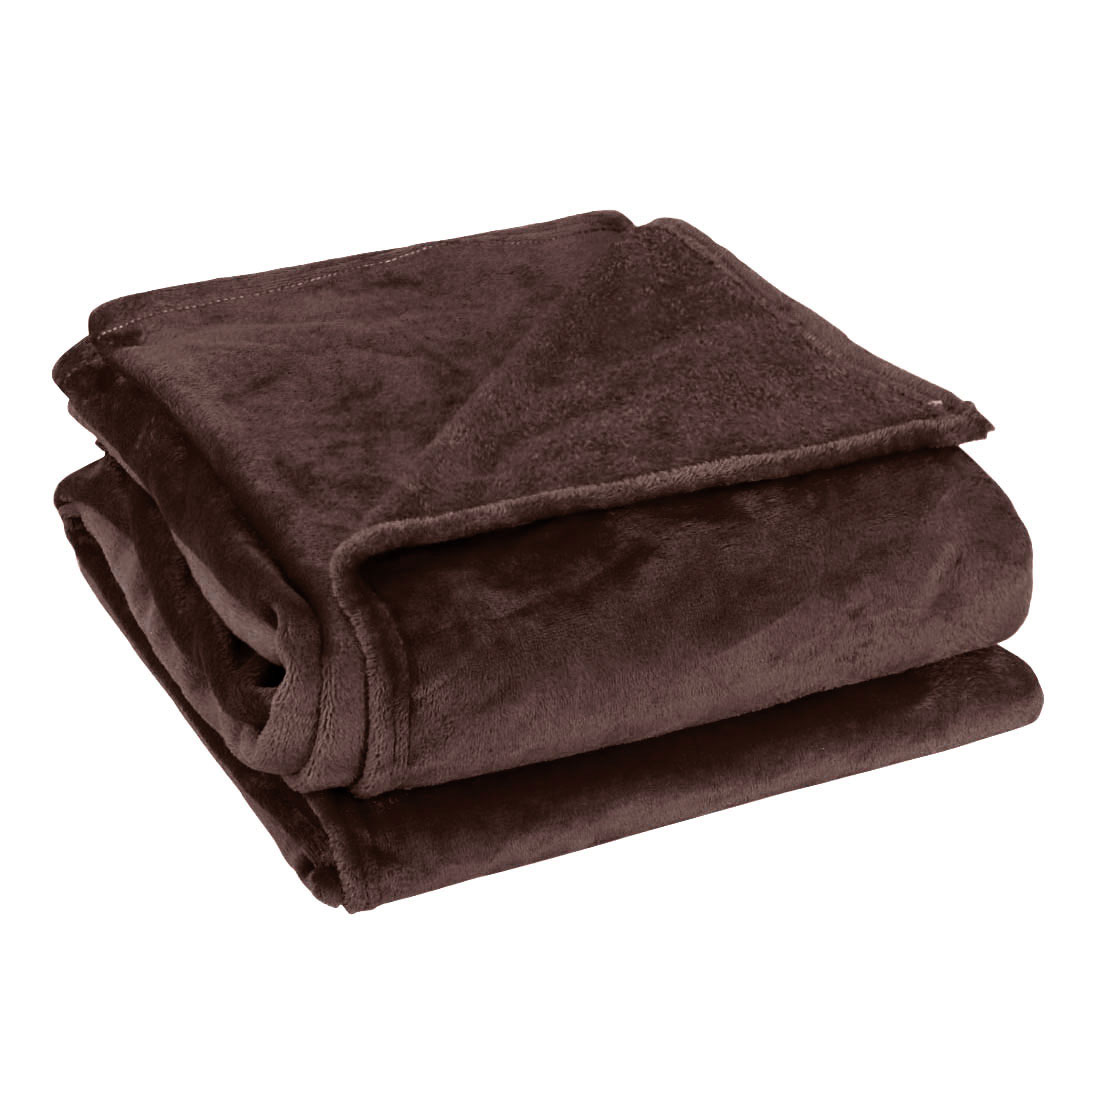 Queen Size Home Bedroom Bed Sofa Warm Plush Couch Throws Blanket Soft Chocolate Color 200 x 230cm